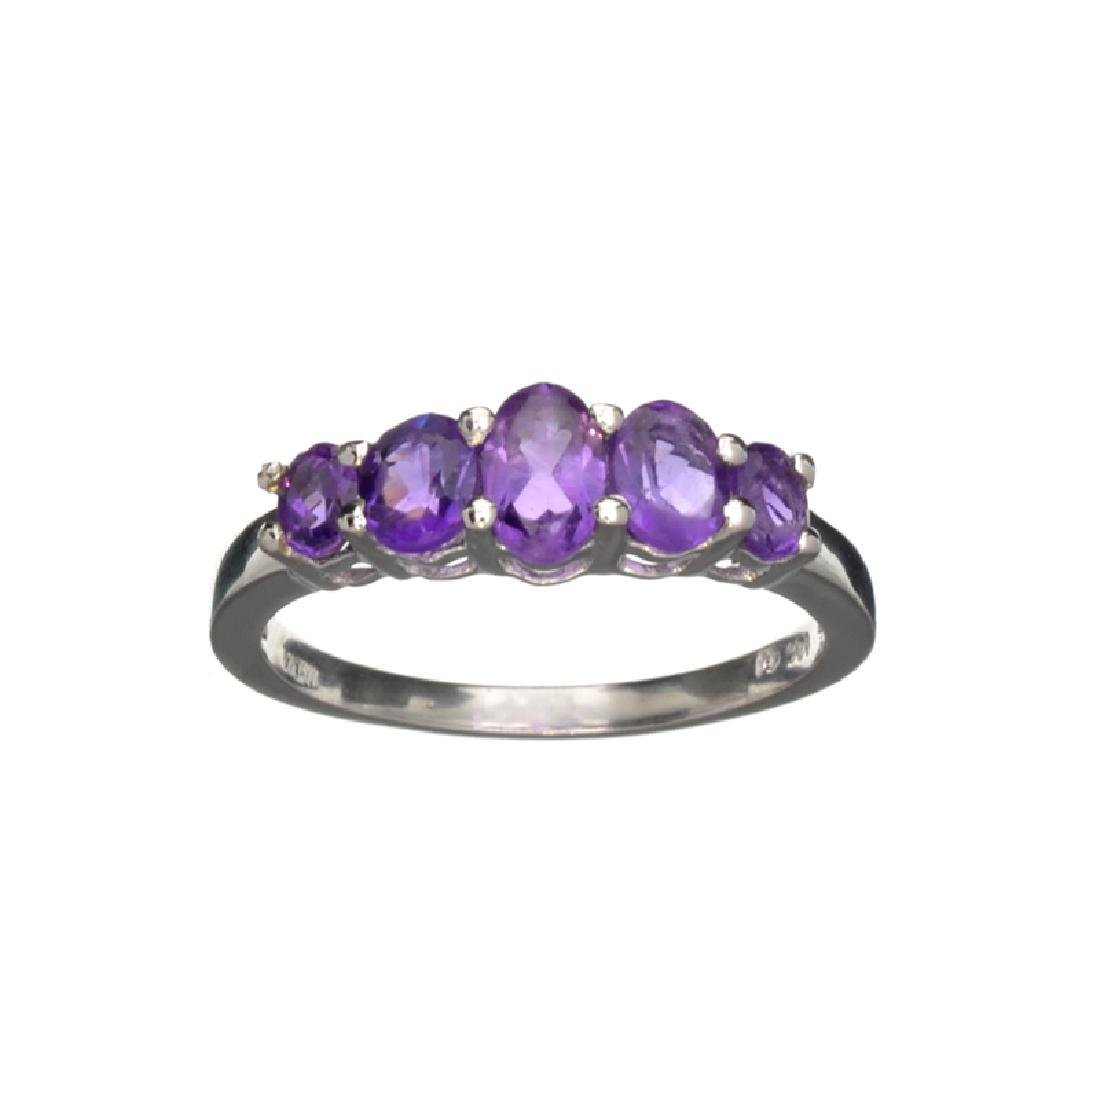 APP: 0.3k Fine Jewelry 1.43CT Oval Cut Purple Amethyst